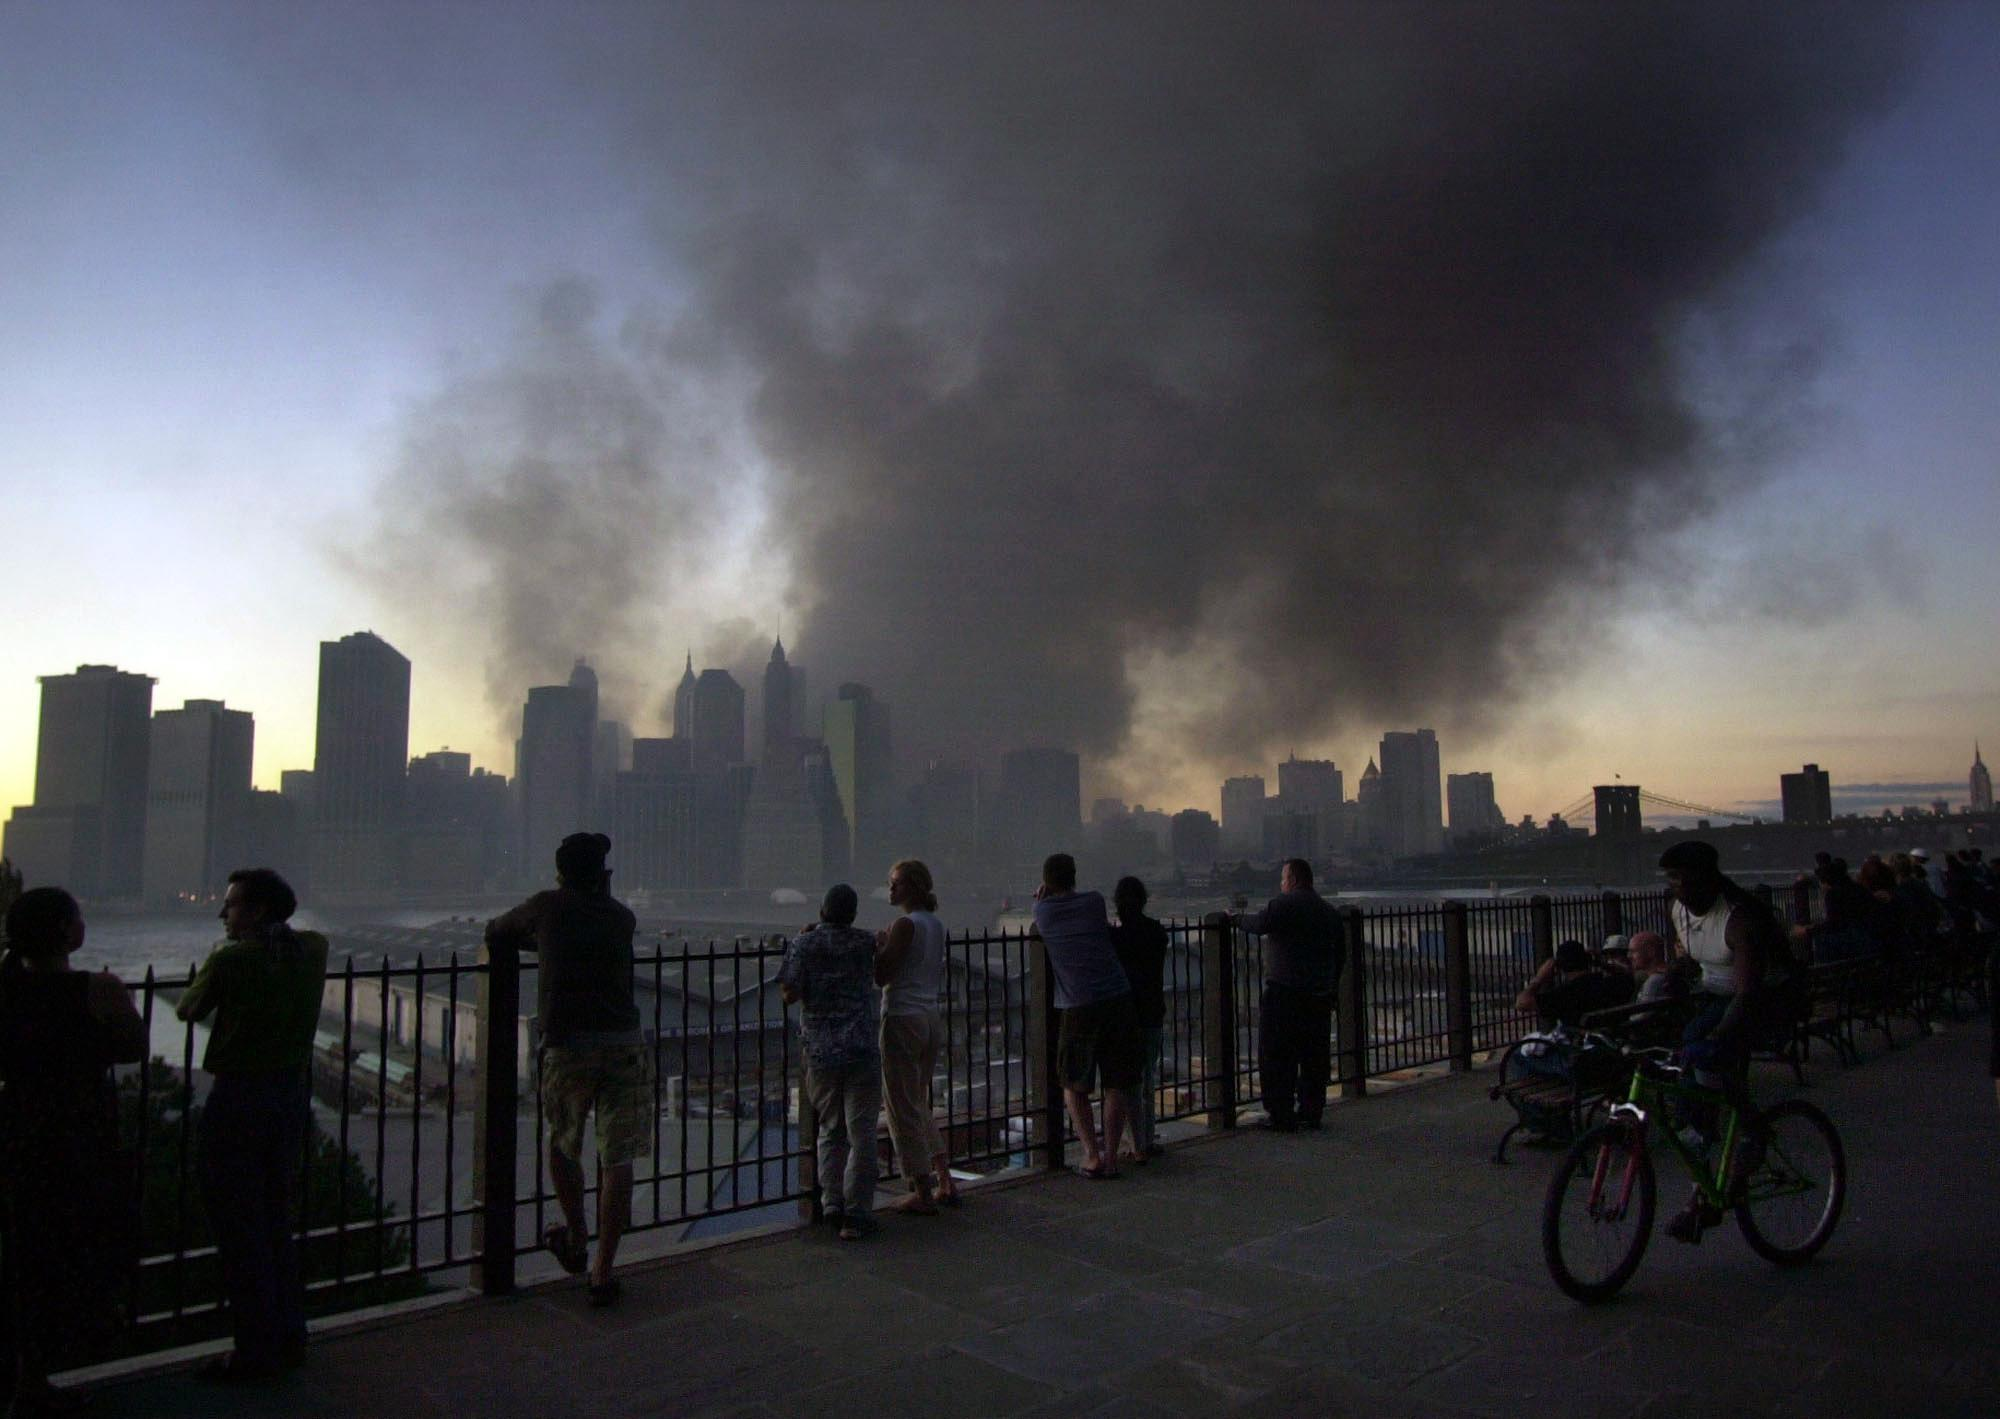 Pedestrians on Pierrepont Place in the Brooklyn borough of New York, watch as smoke billows from the remains of the World Trade Center in New York, Sept. 11, 2001. (AP Photo/Lawrence Jackson)